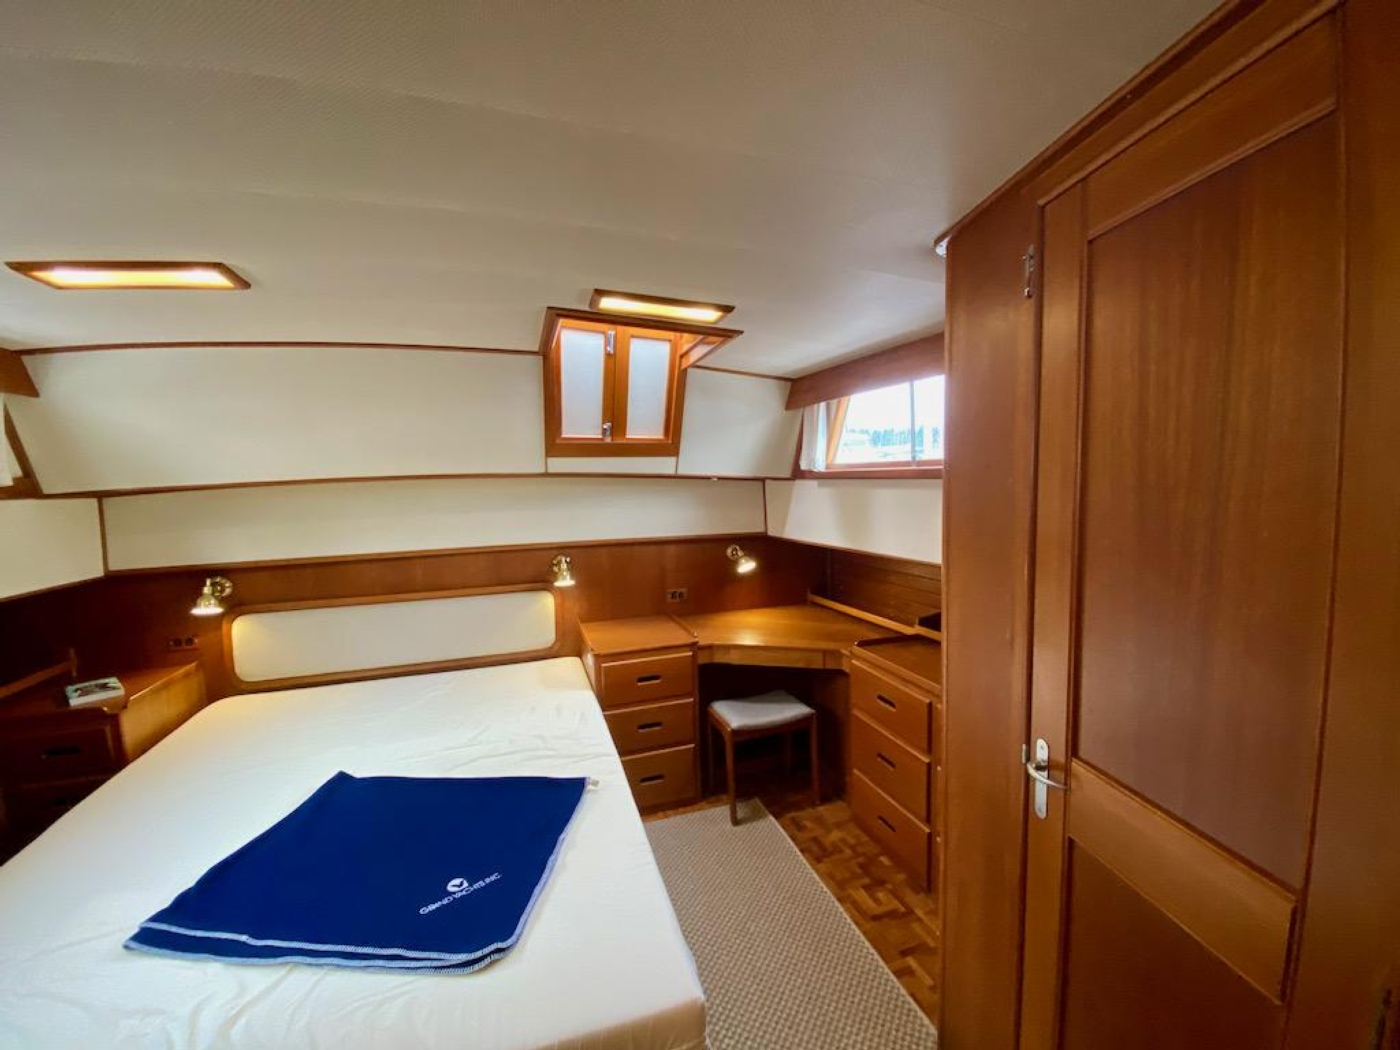 1998 Grand Banks 42 Classic, Aft cabin